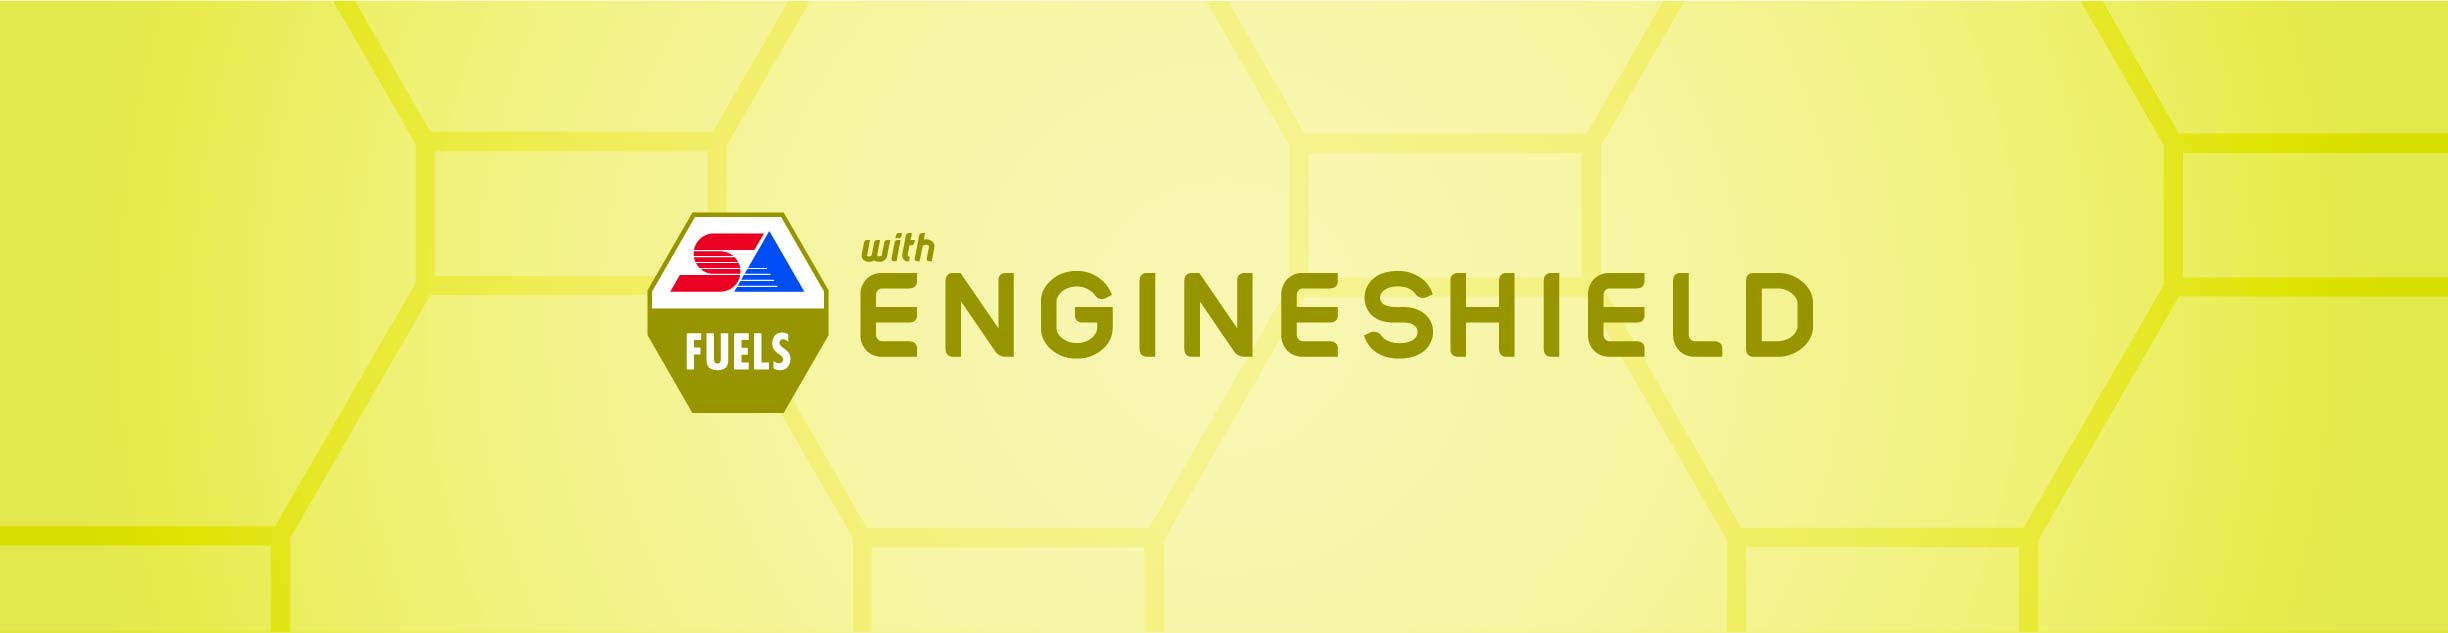 EngineShield_Concept@2x